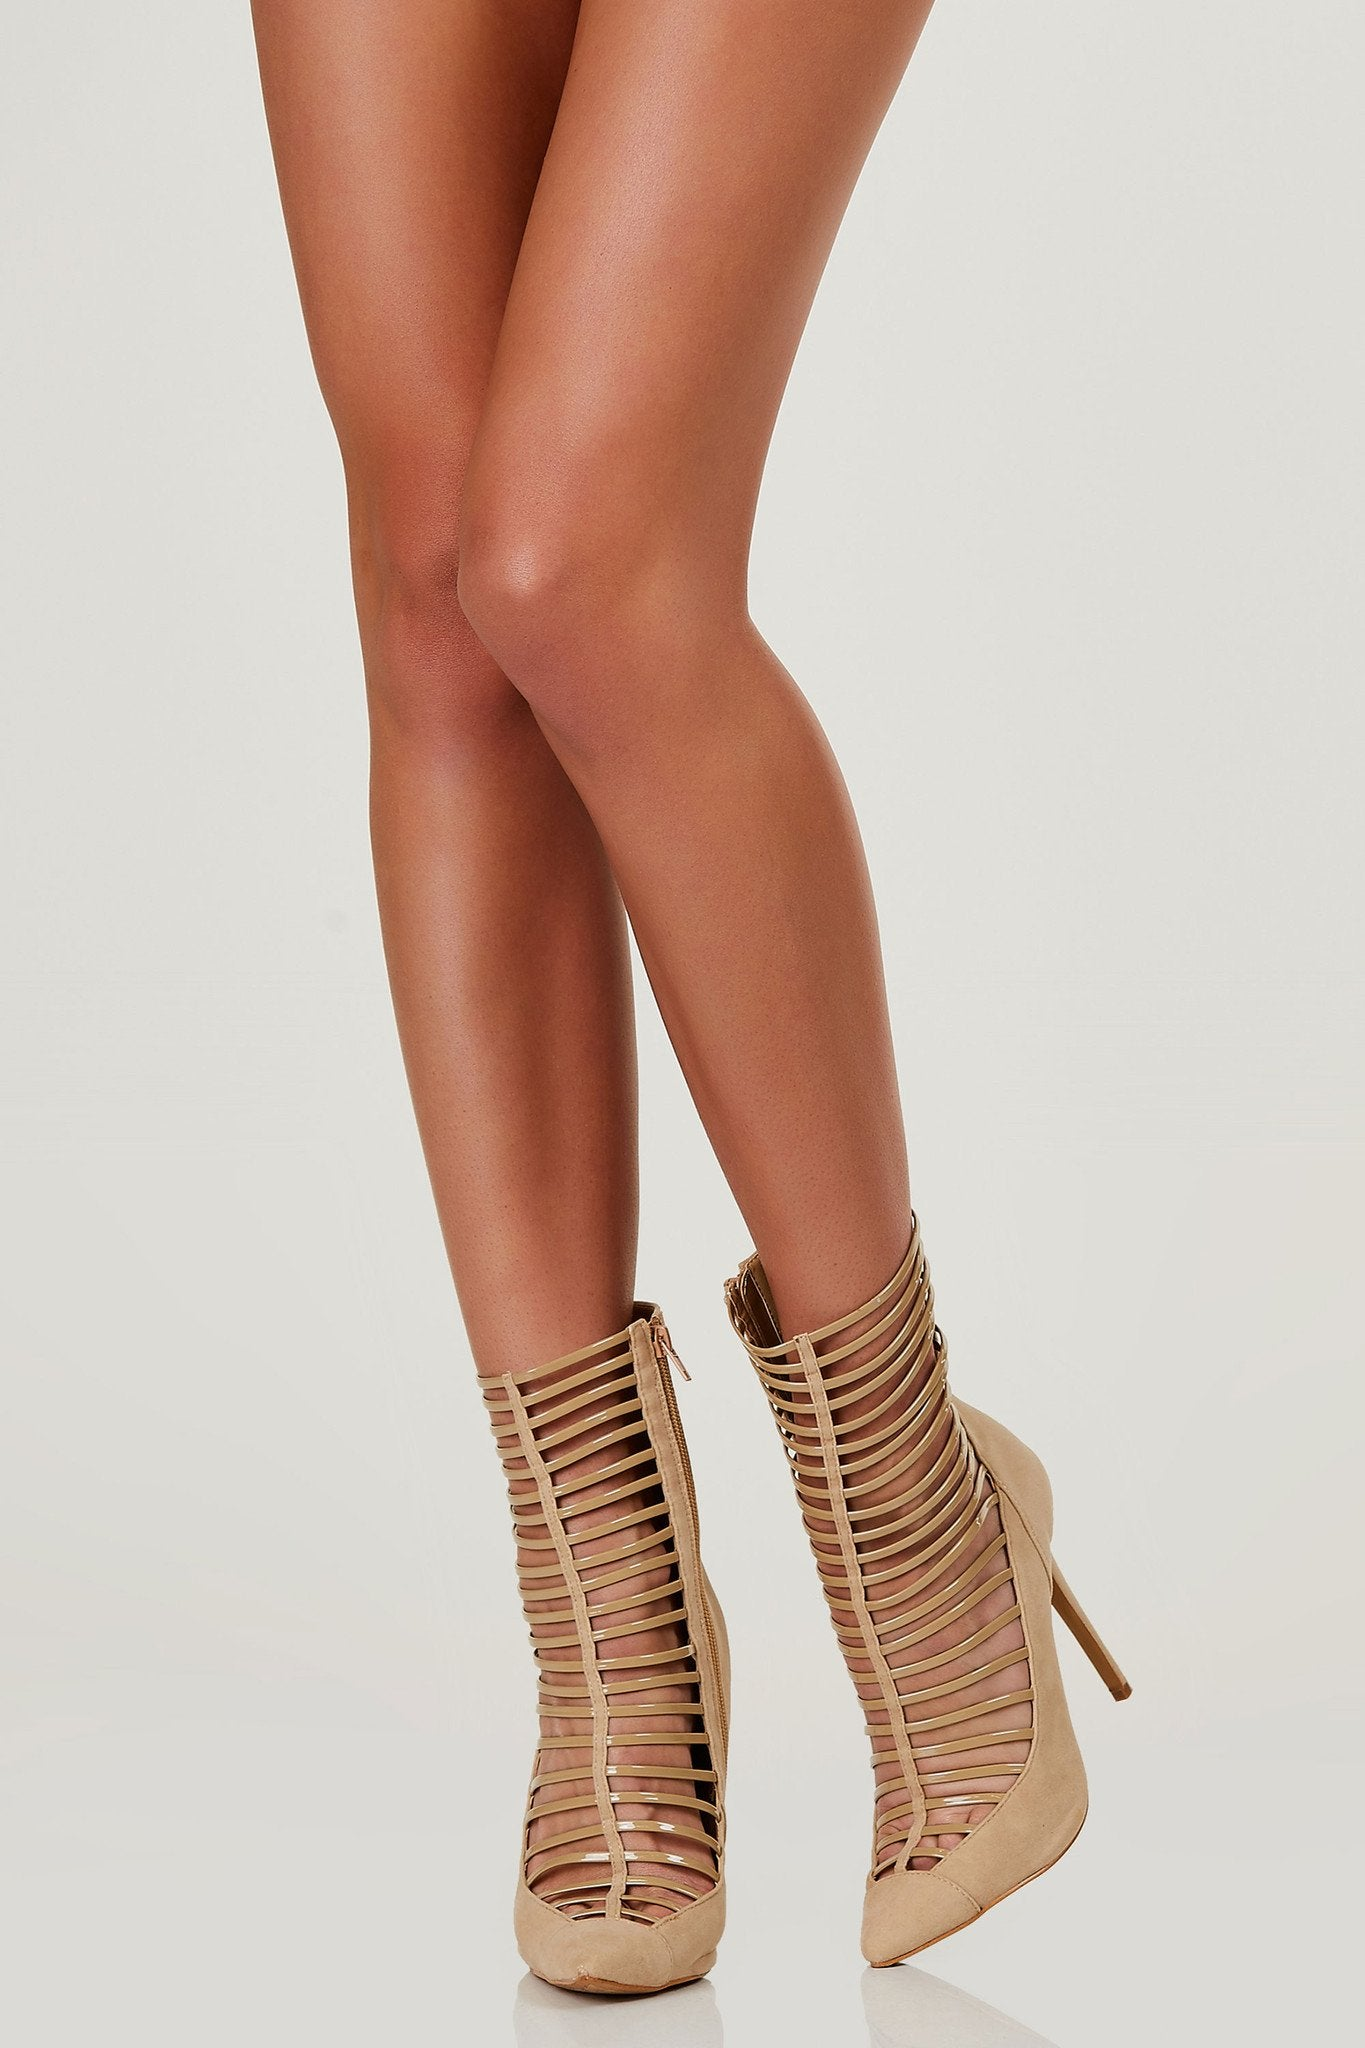 Chic pointed toe pumps with suede finish. Contrast caged cut out in front with side zip closure.